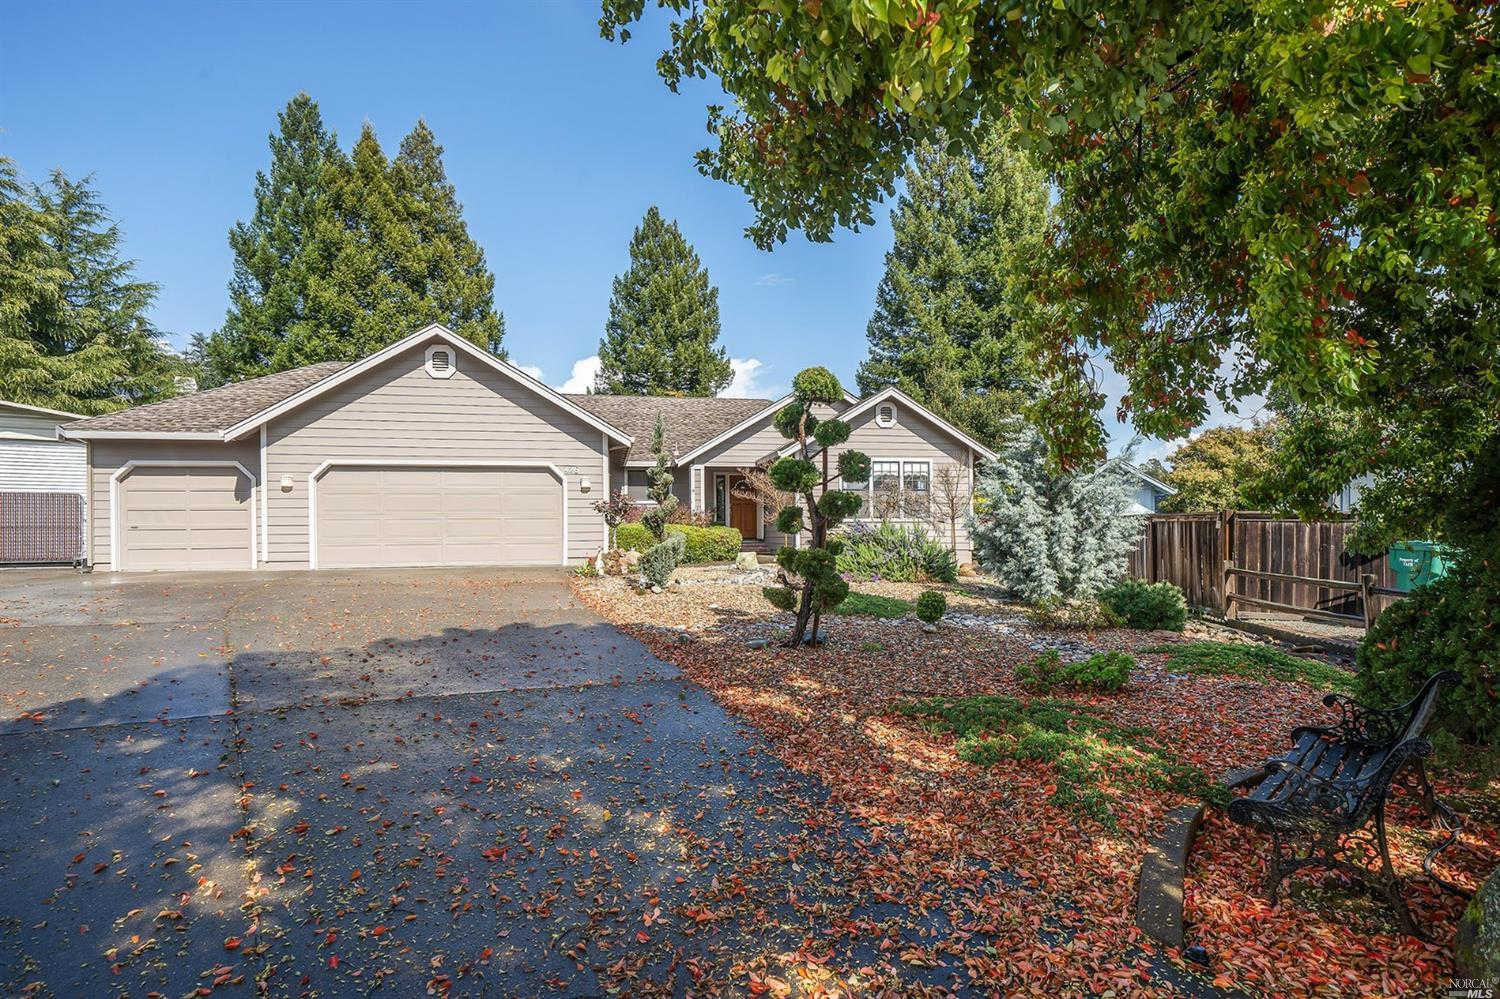 426 Tee Drive, Healdsburg, CA 95448 now has a new price of $1,225,000!